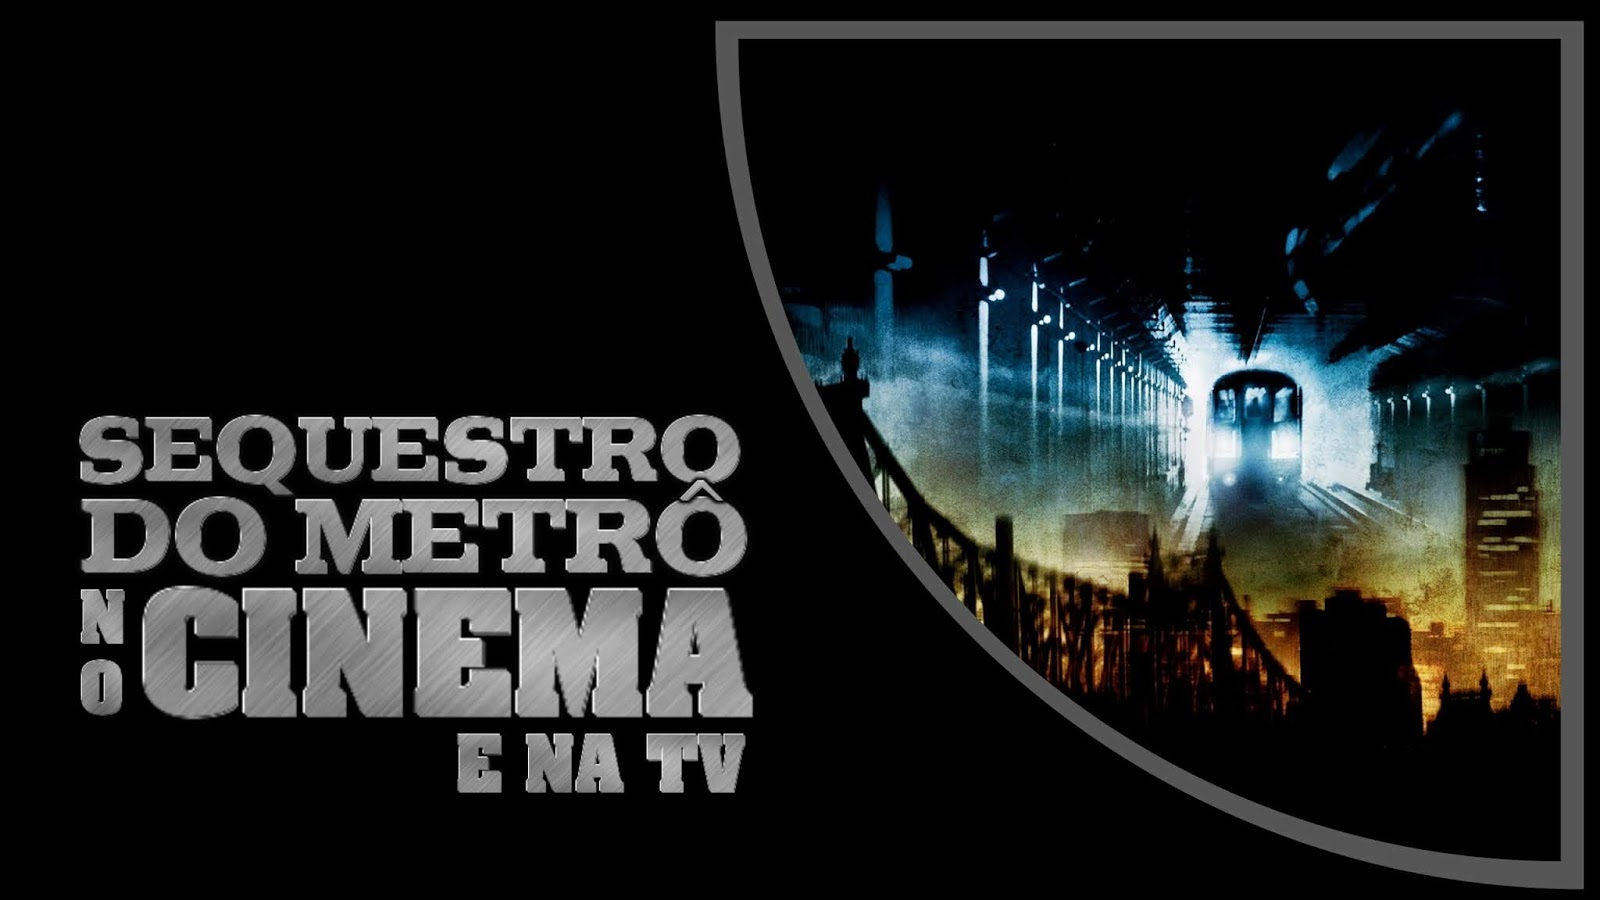 sequestro-do-metro-no-cinema-tv.